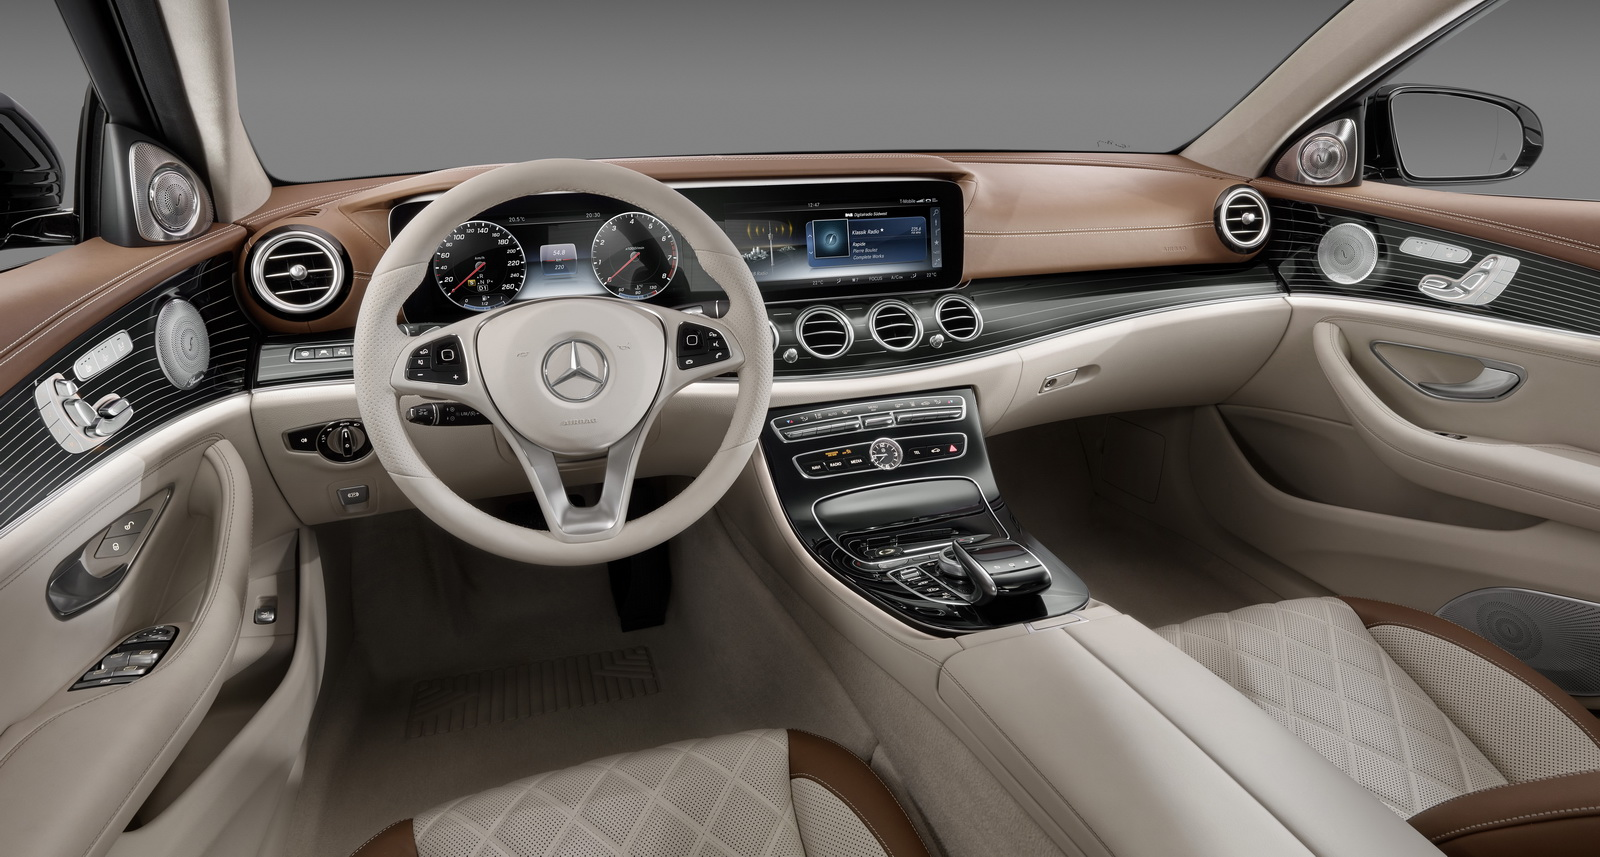 2017 mercedes benz e class dashboard shown at ces. Black Bedroom Furniture Sets. Home Design Ideas